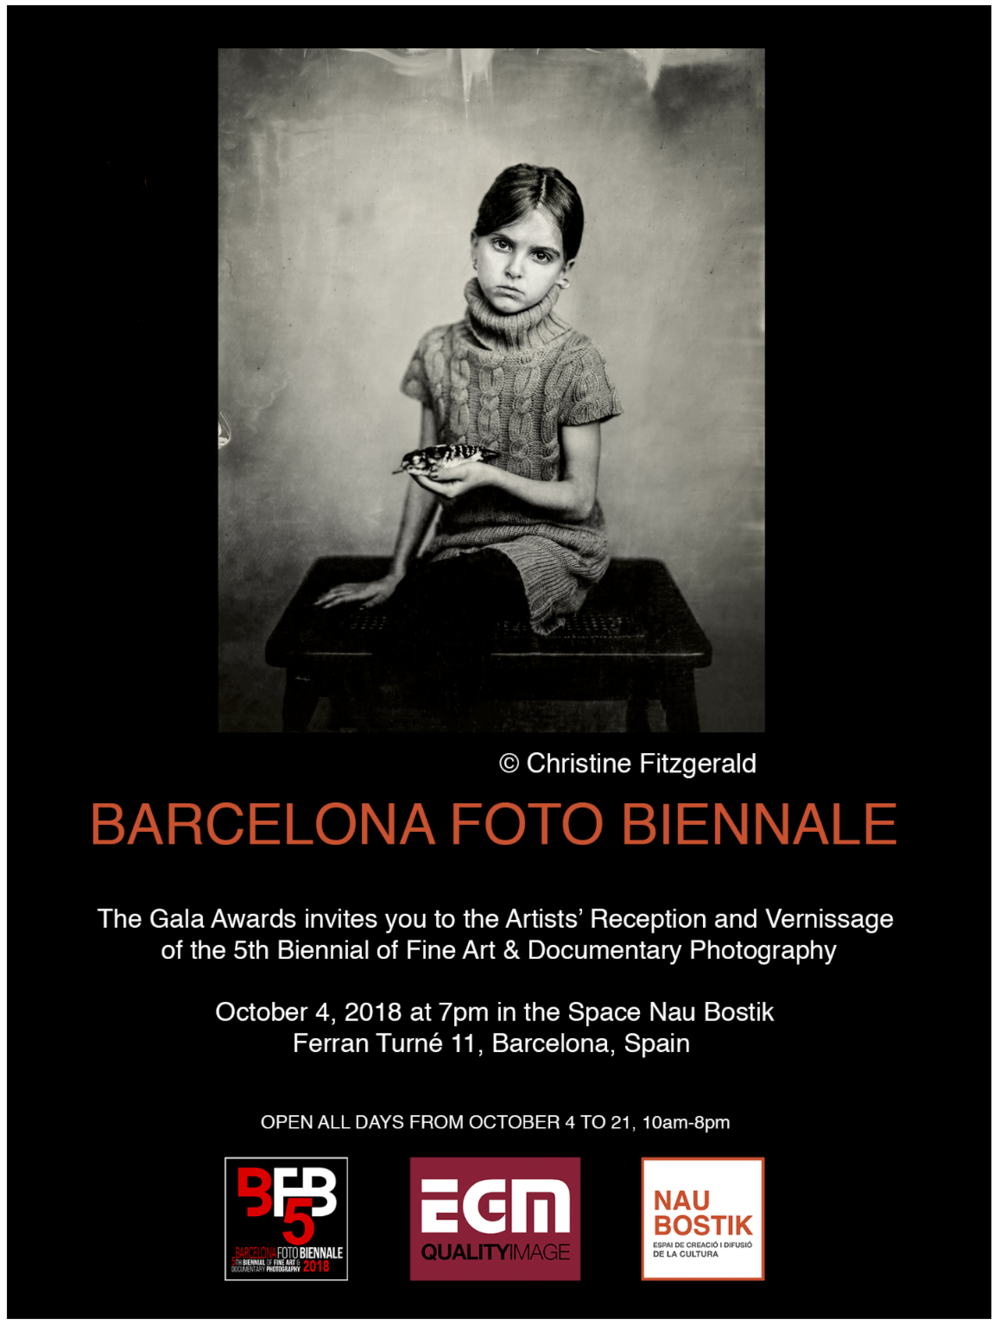 Barcelona Foto Biennale, Oct 4 to 21, 2018